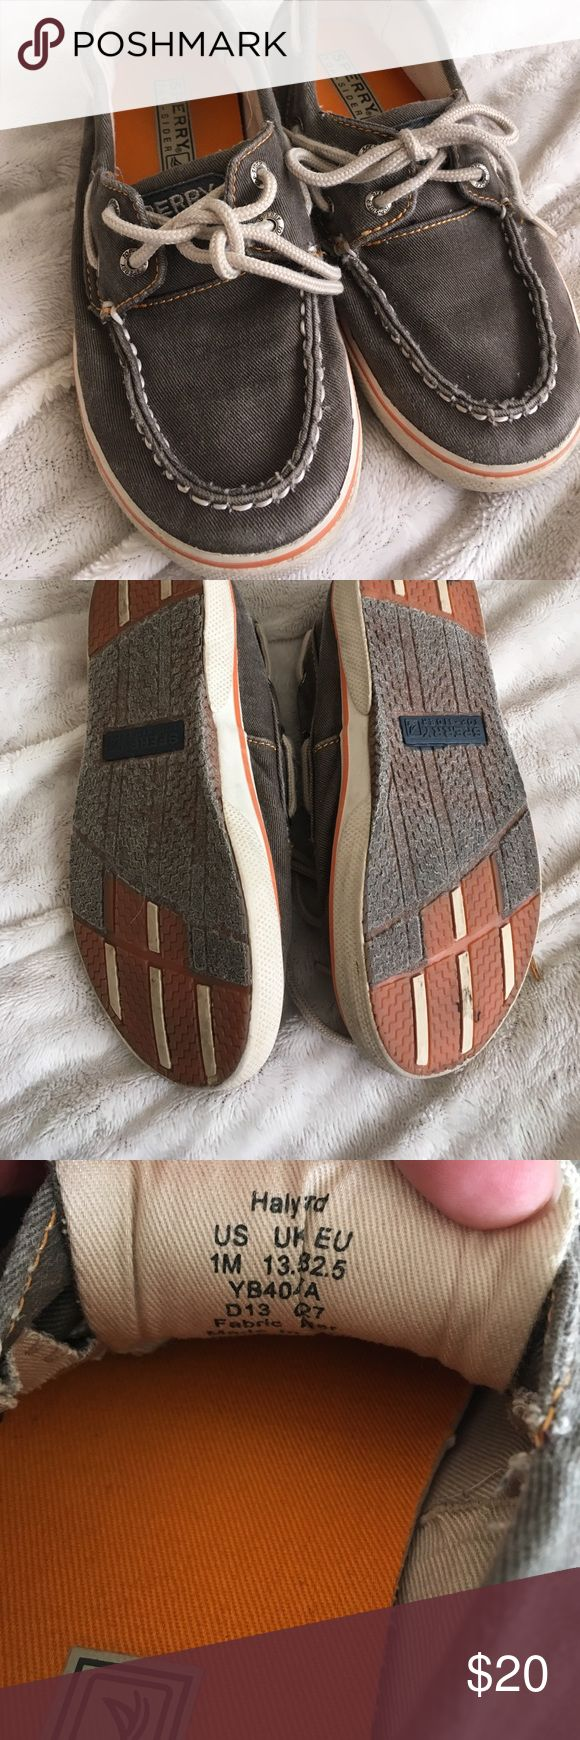 Kids size 1 Sperry Top-Siders boat shoes Super cute shoes for kids. Looks so good with all types of shorts and pants. Any little fella will look spiffy in these! Sperry Top-Sider Shoes